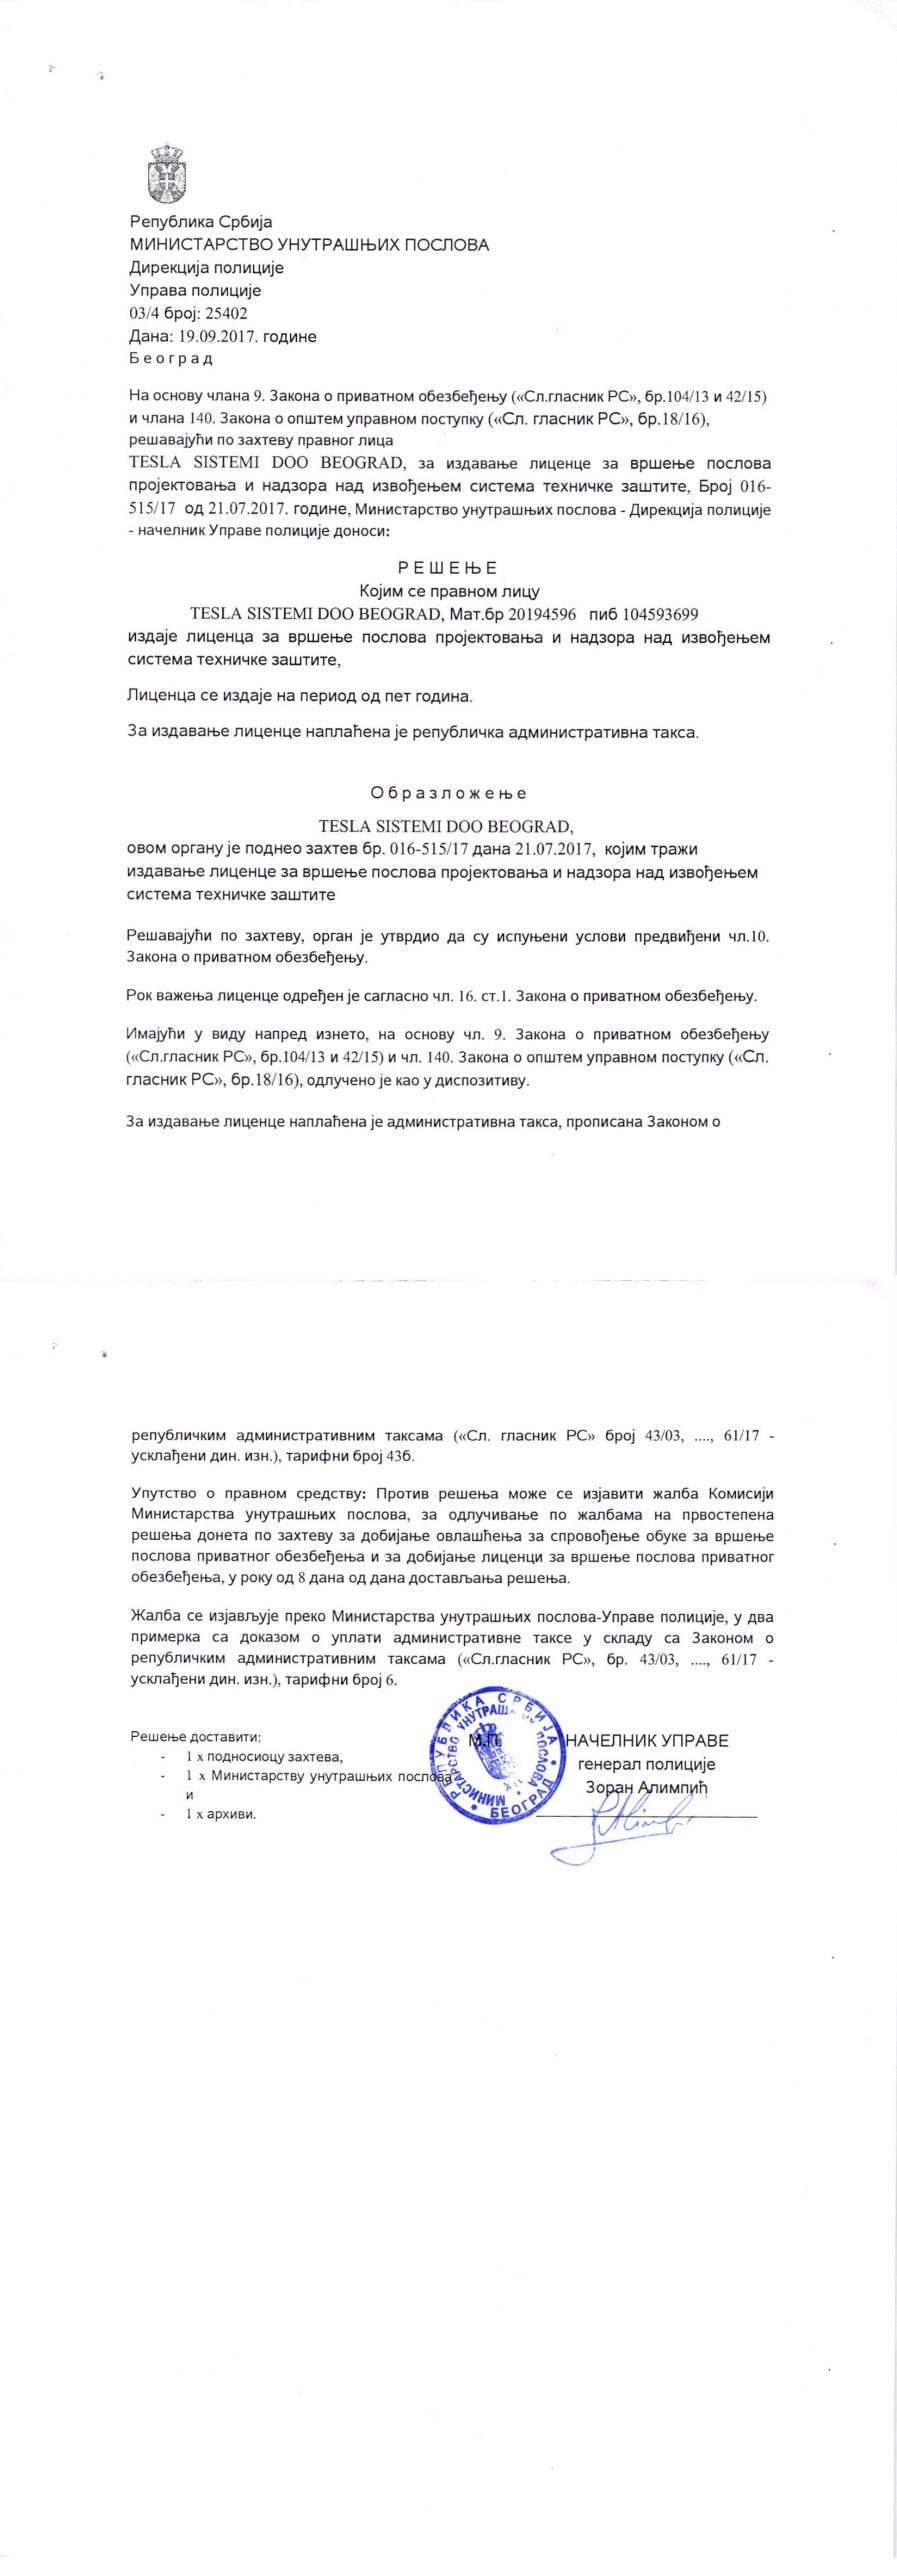 License for design and supervision of technical protection systems